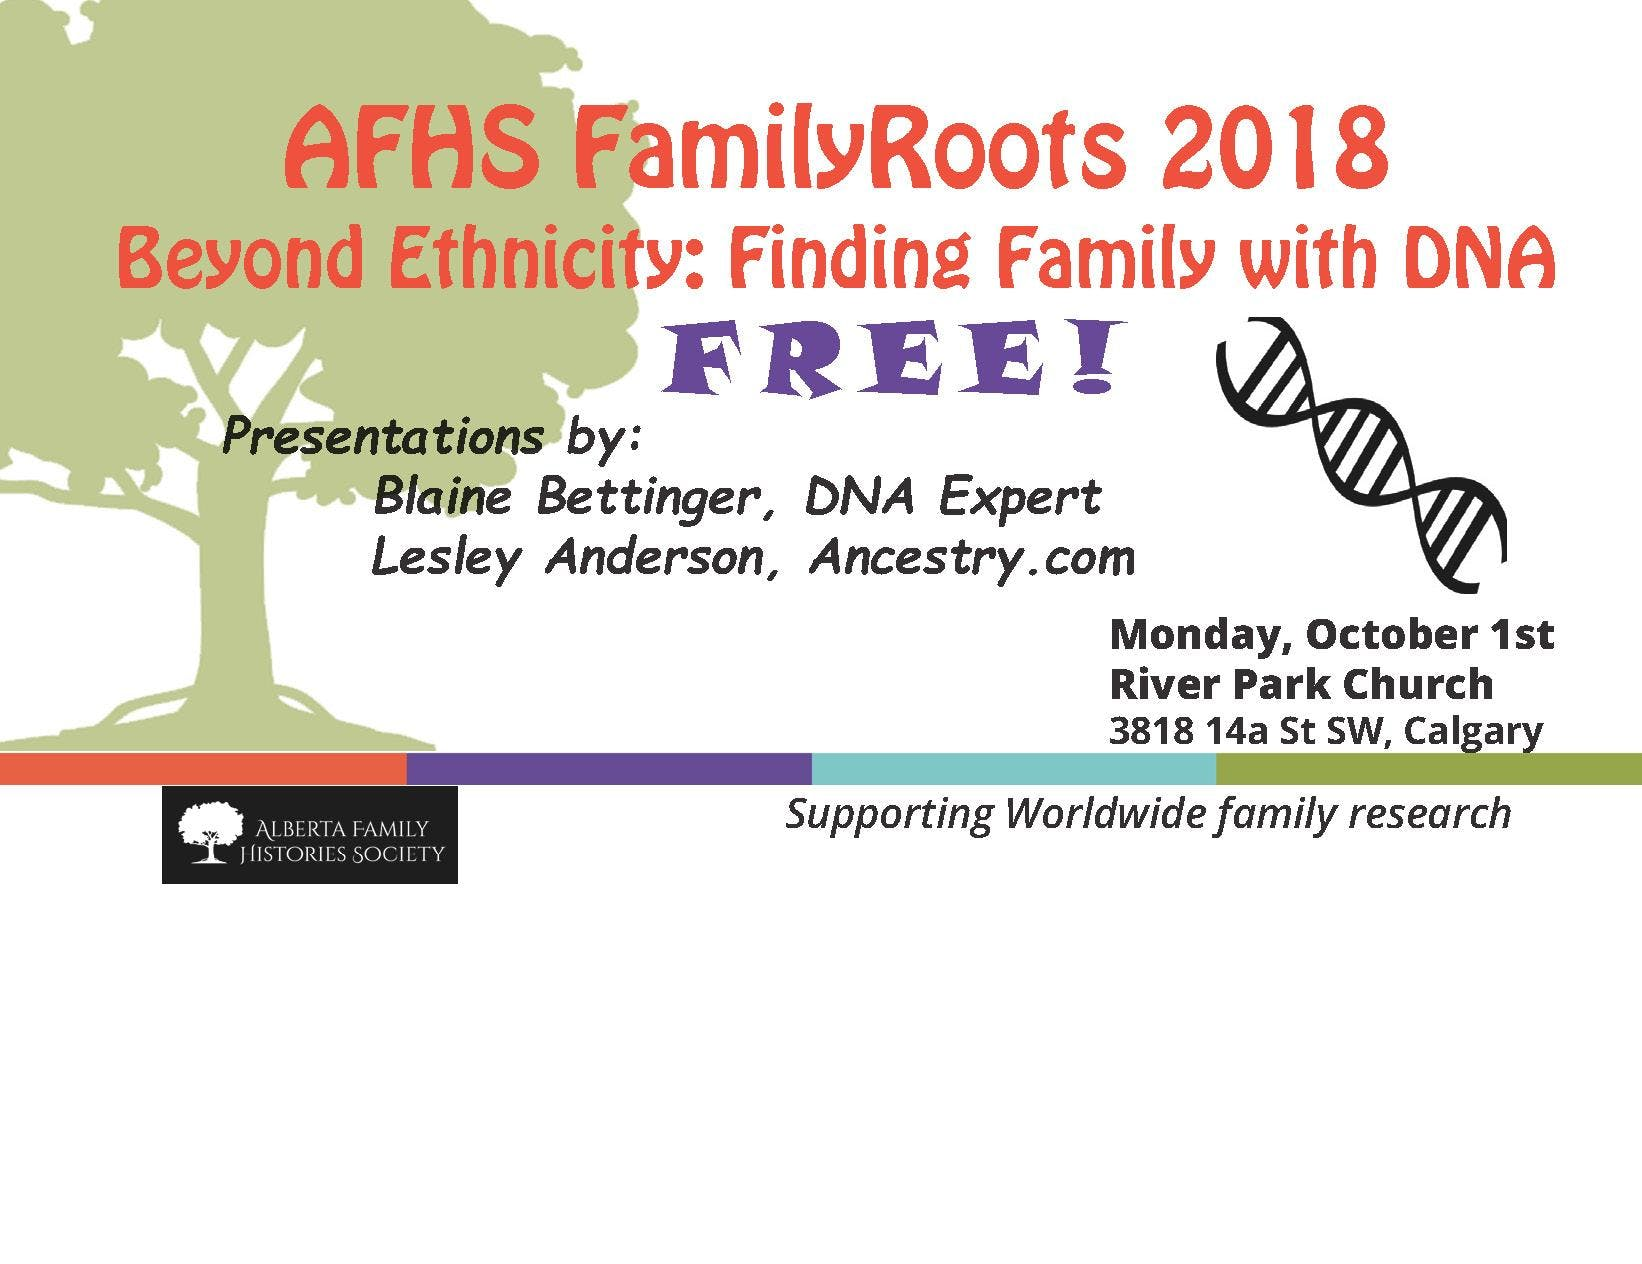 AFHS FamilyRoots 2018 - FREE Monday Evening D